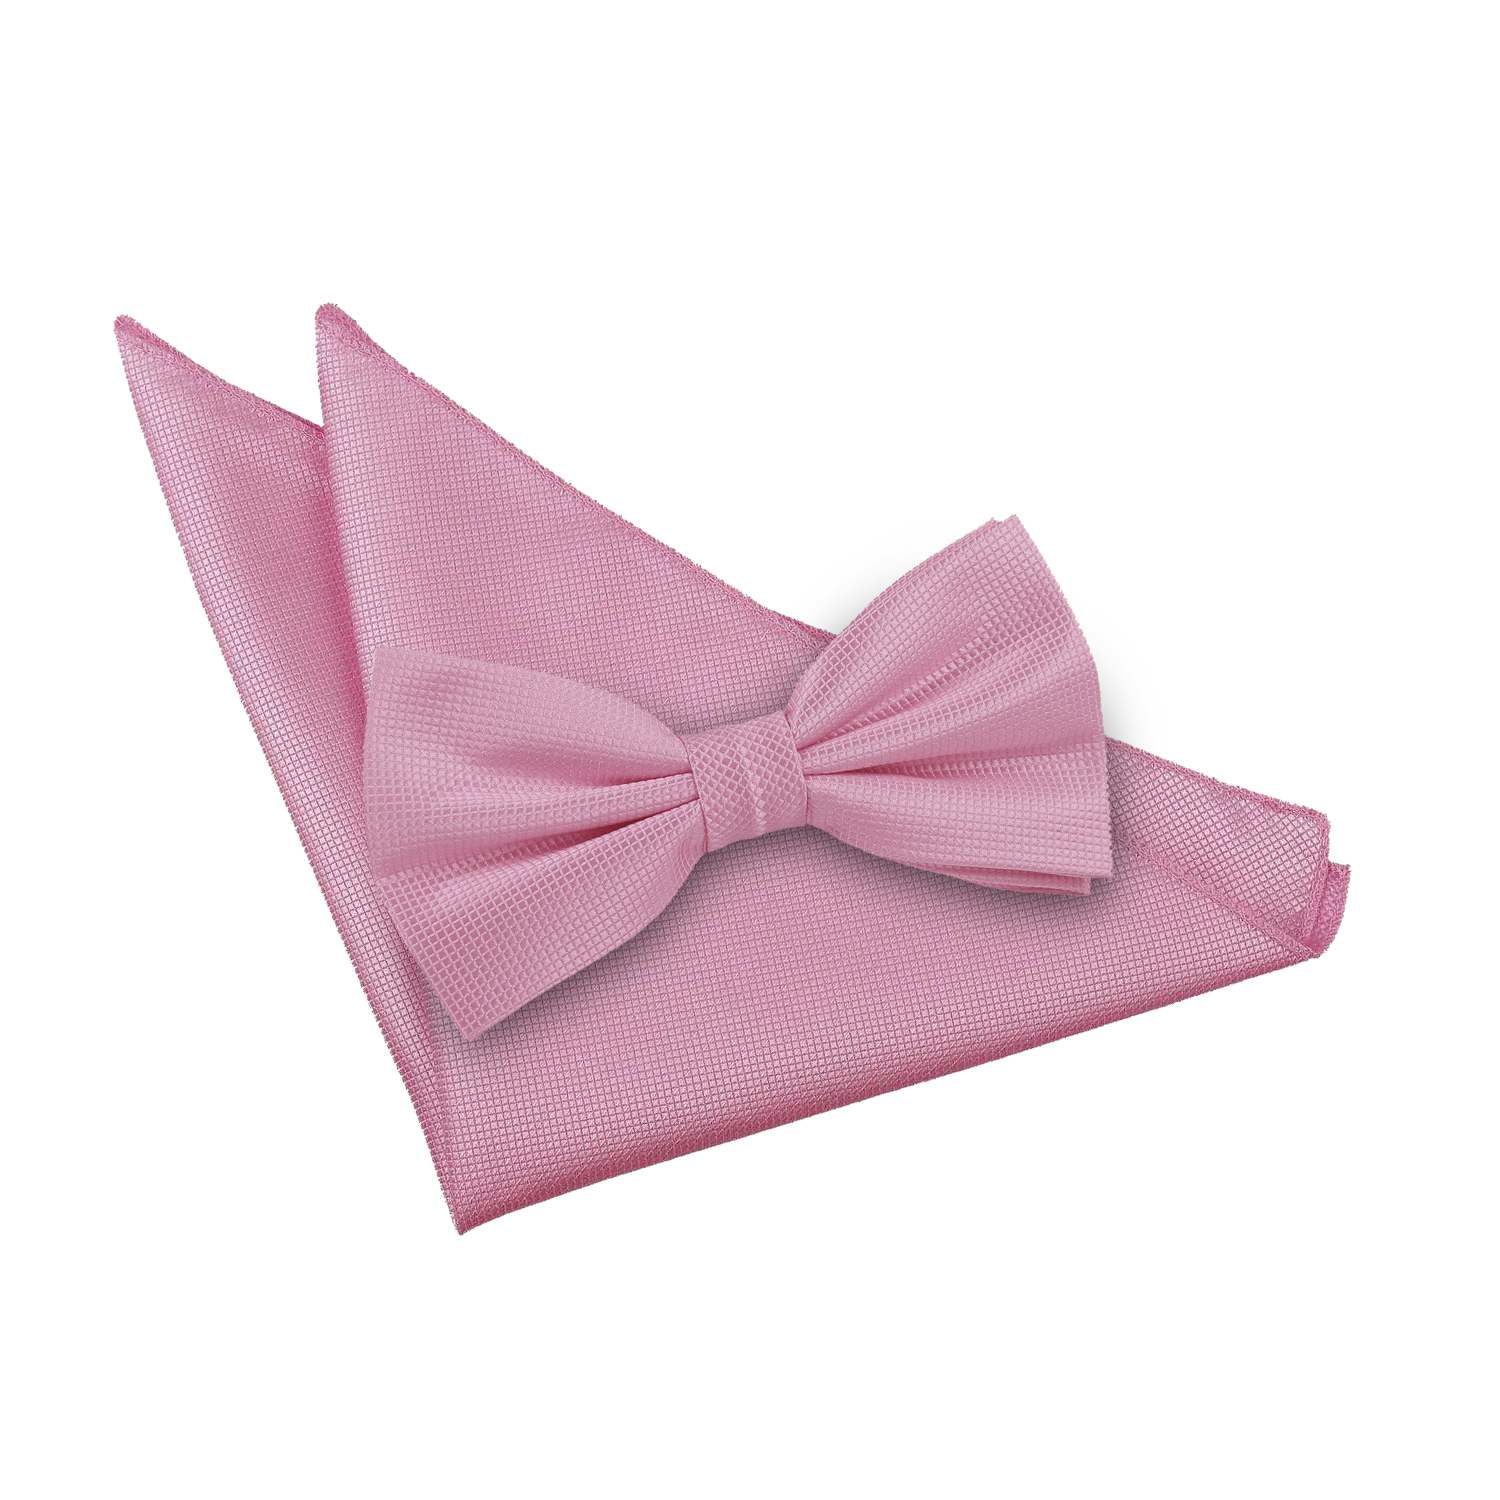 s solid check light pink bow tie 2 pc set